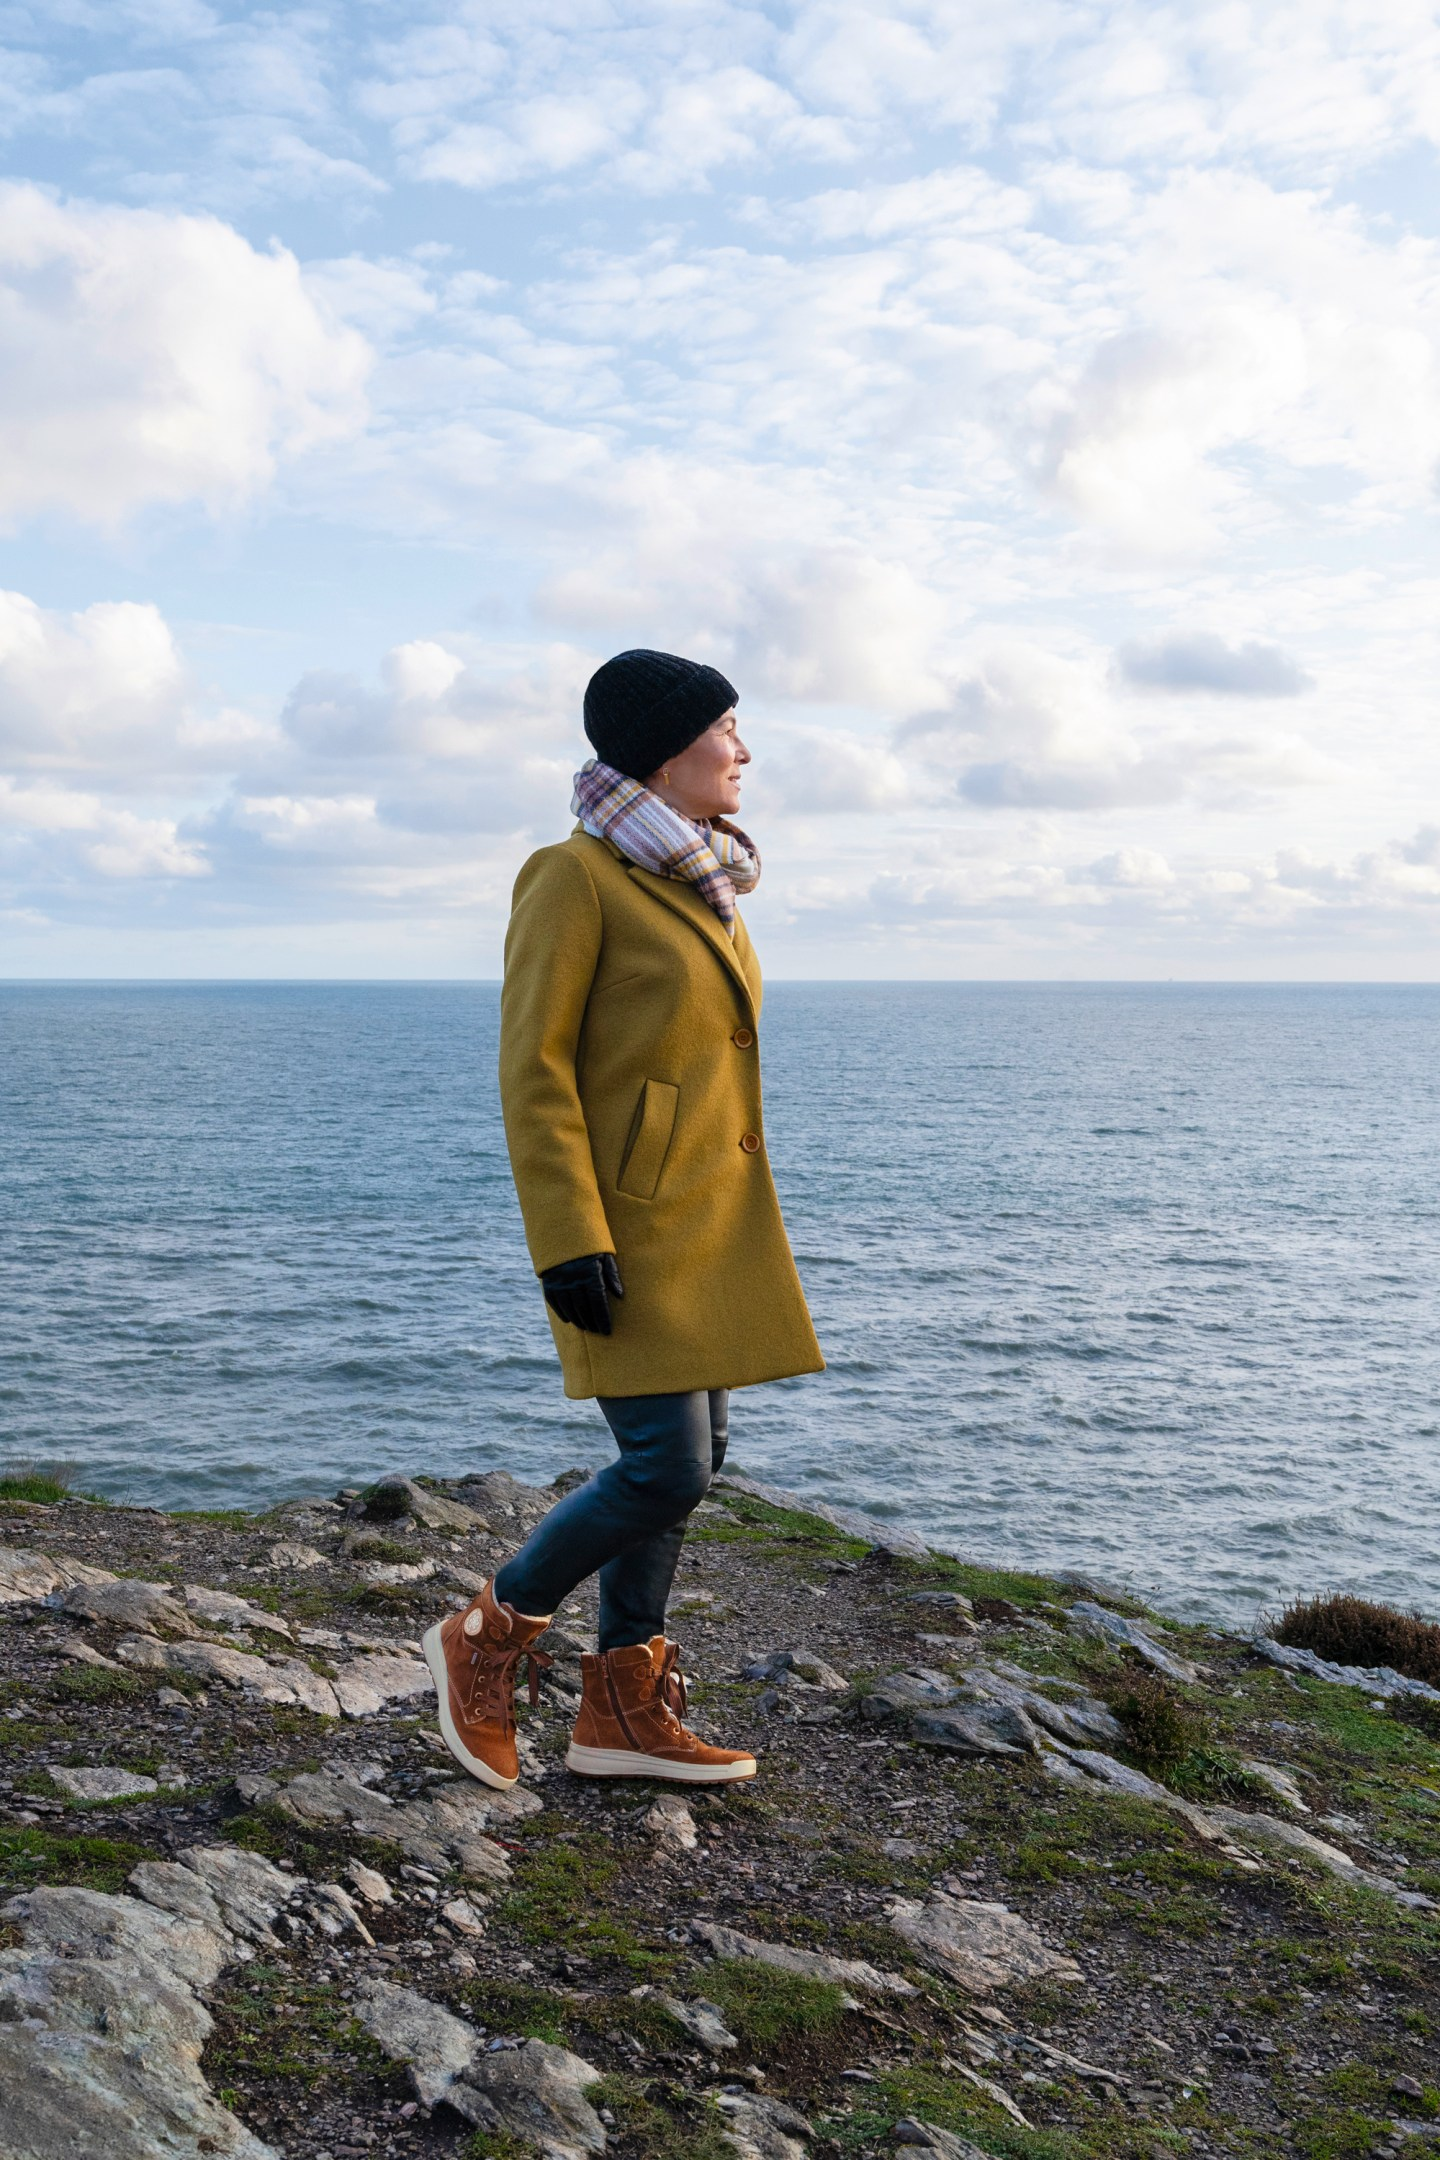 LadyofStyle Howth Cliff Walk Dublin Irland Outdoor ara Stiefeletten